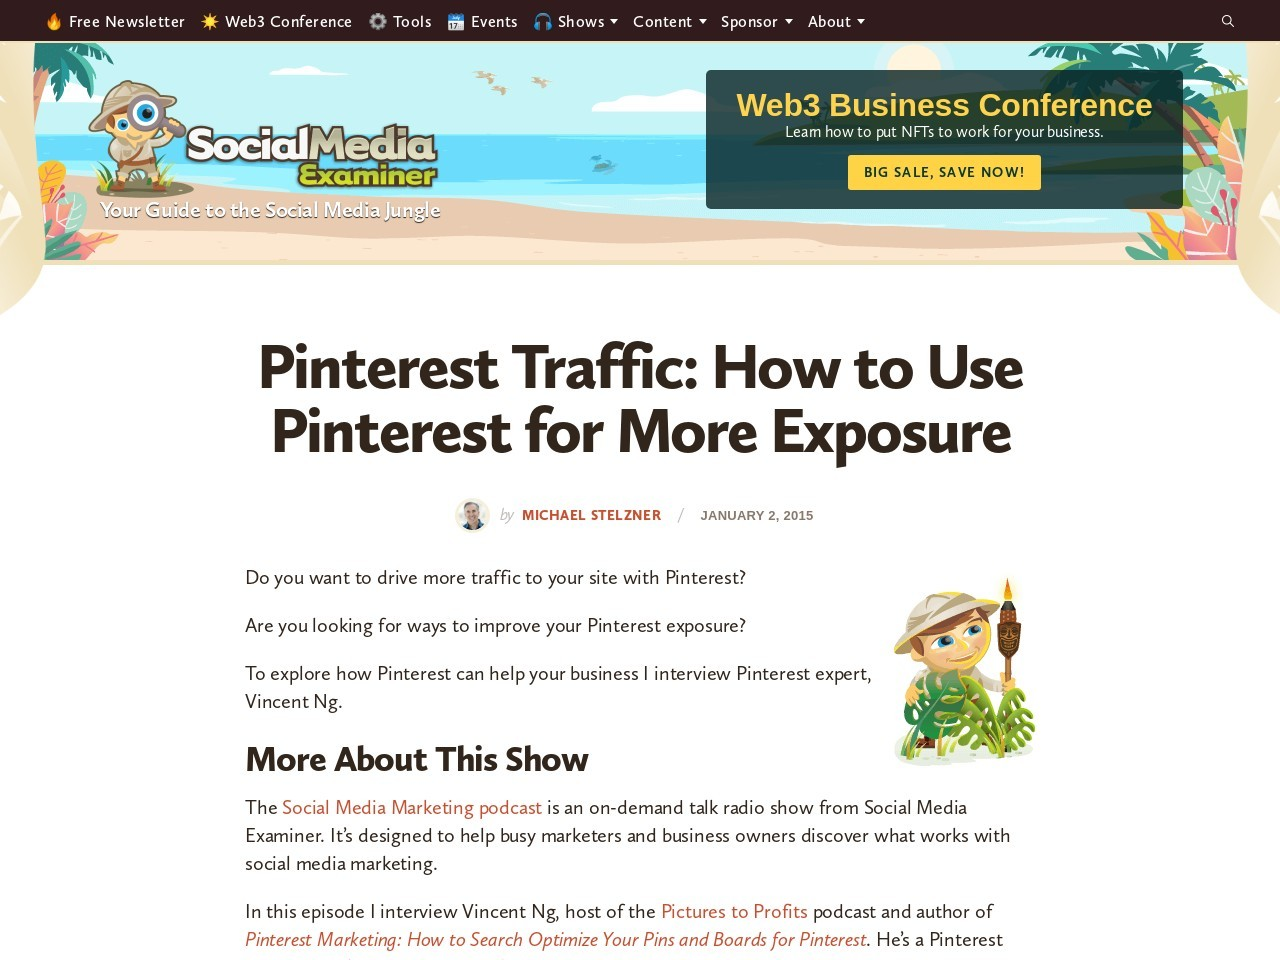 Pinterest Traffic: How to Use Pinterest for More Exposure